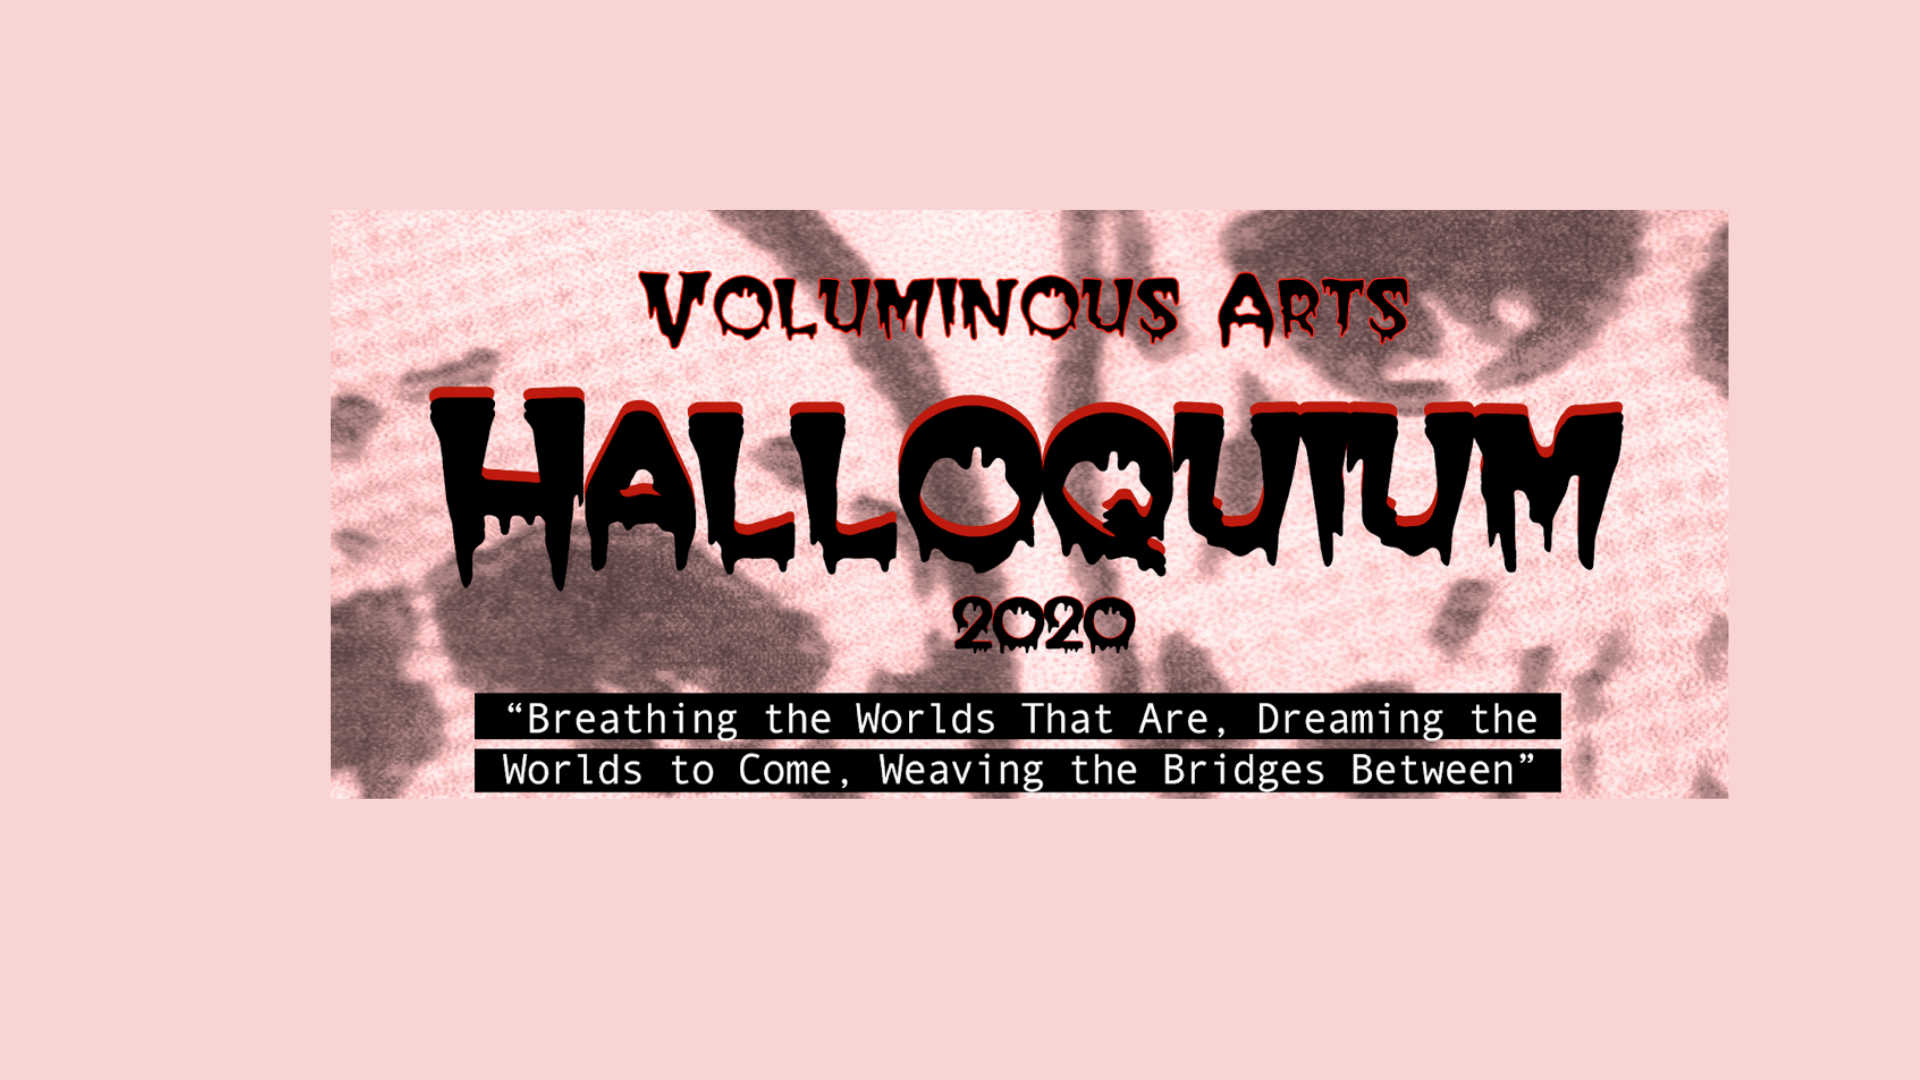 Voluminous Arts Presents a Halloquium, a Sacred Pause for the Nightlife Scene